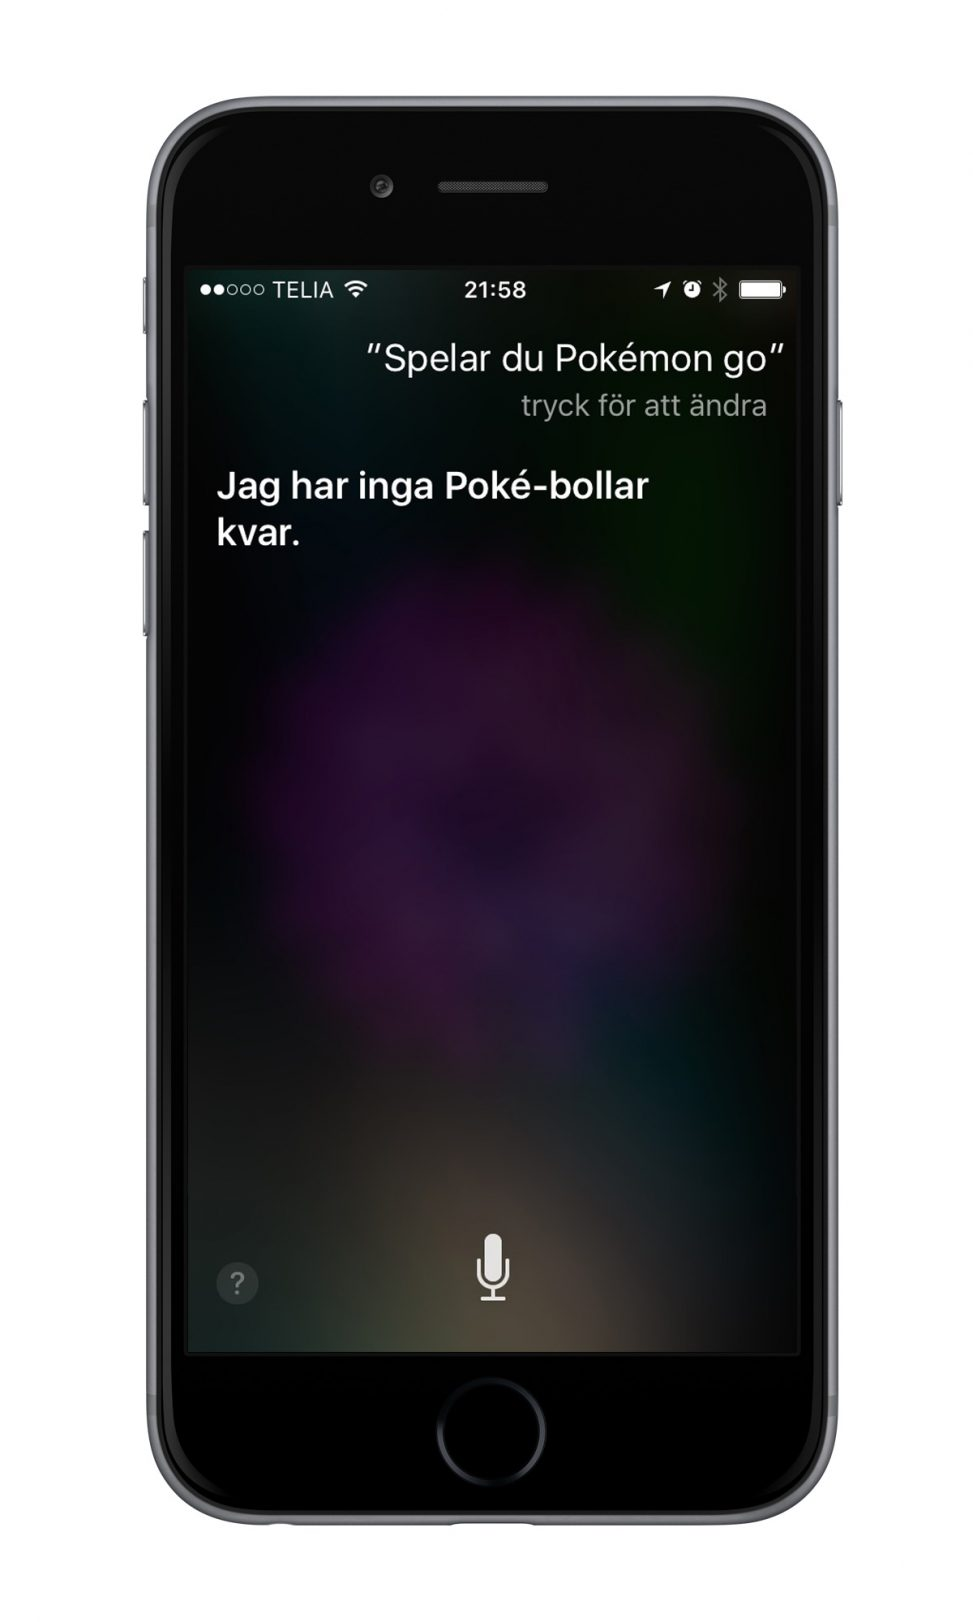 iPhone 6 Siri Pokémon